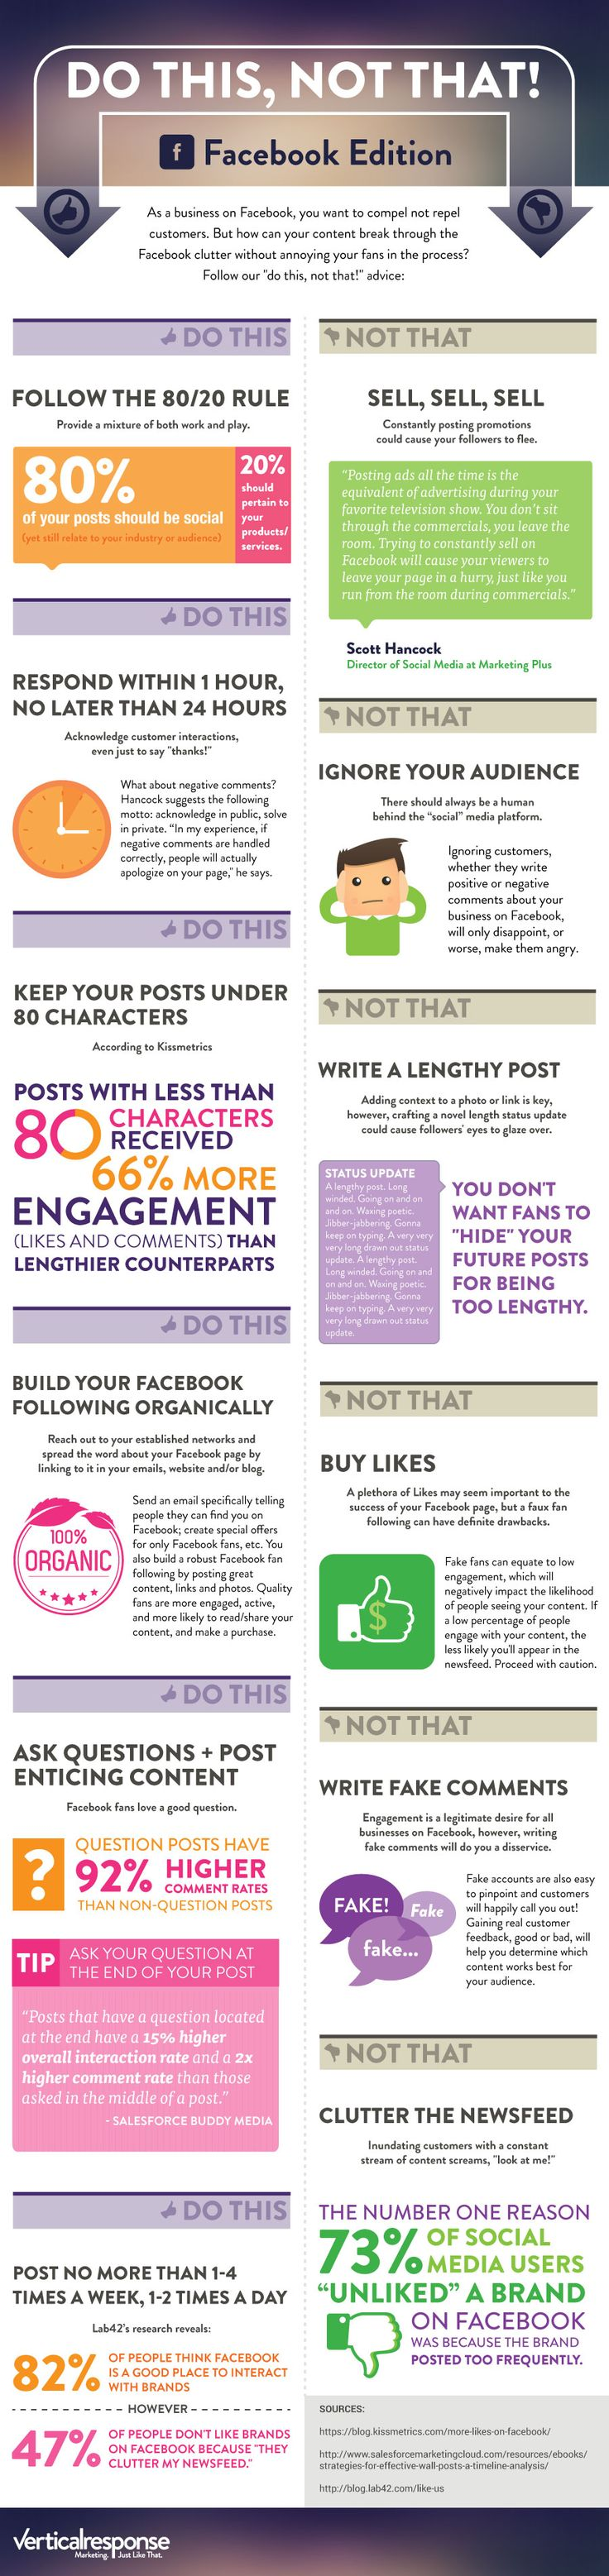 This #infographic addresses what you should or shouldn't do as a business on #Facebook. #socialmedia